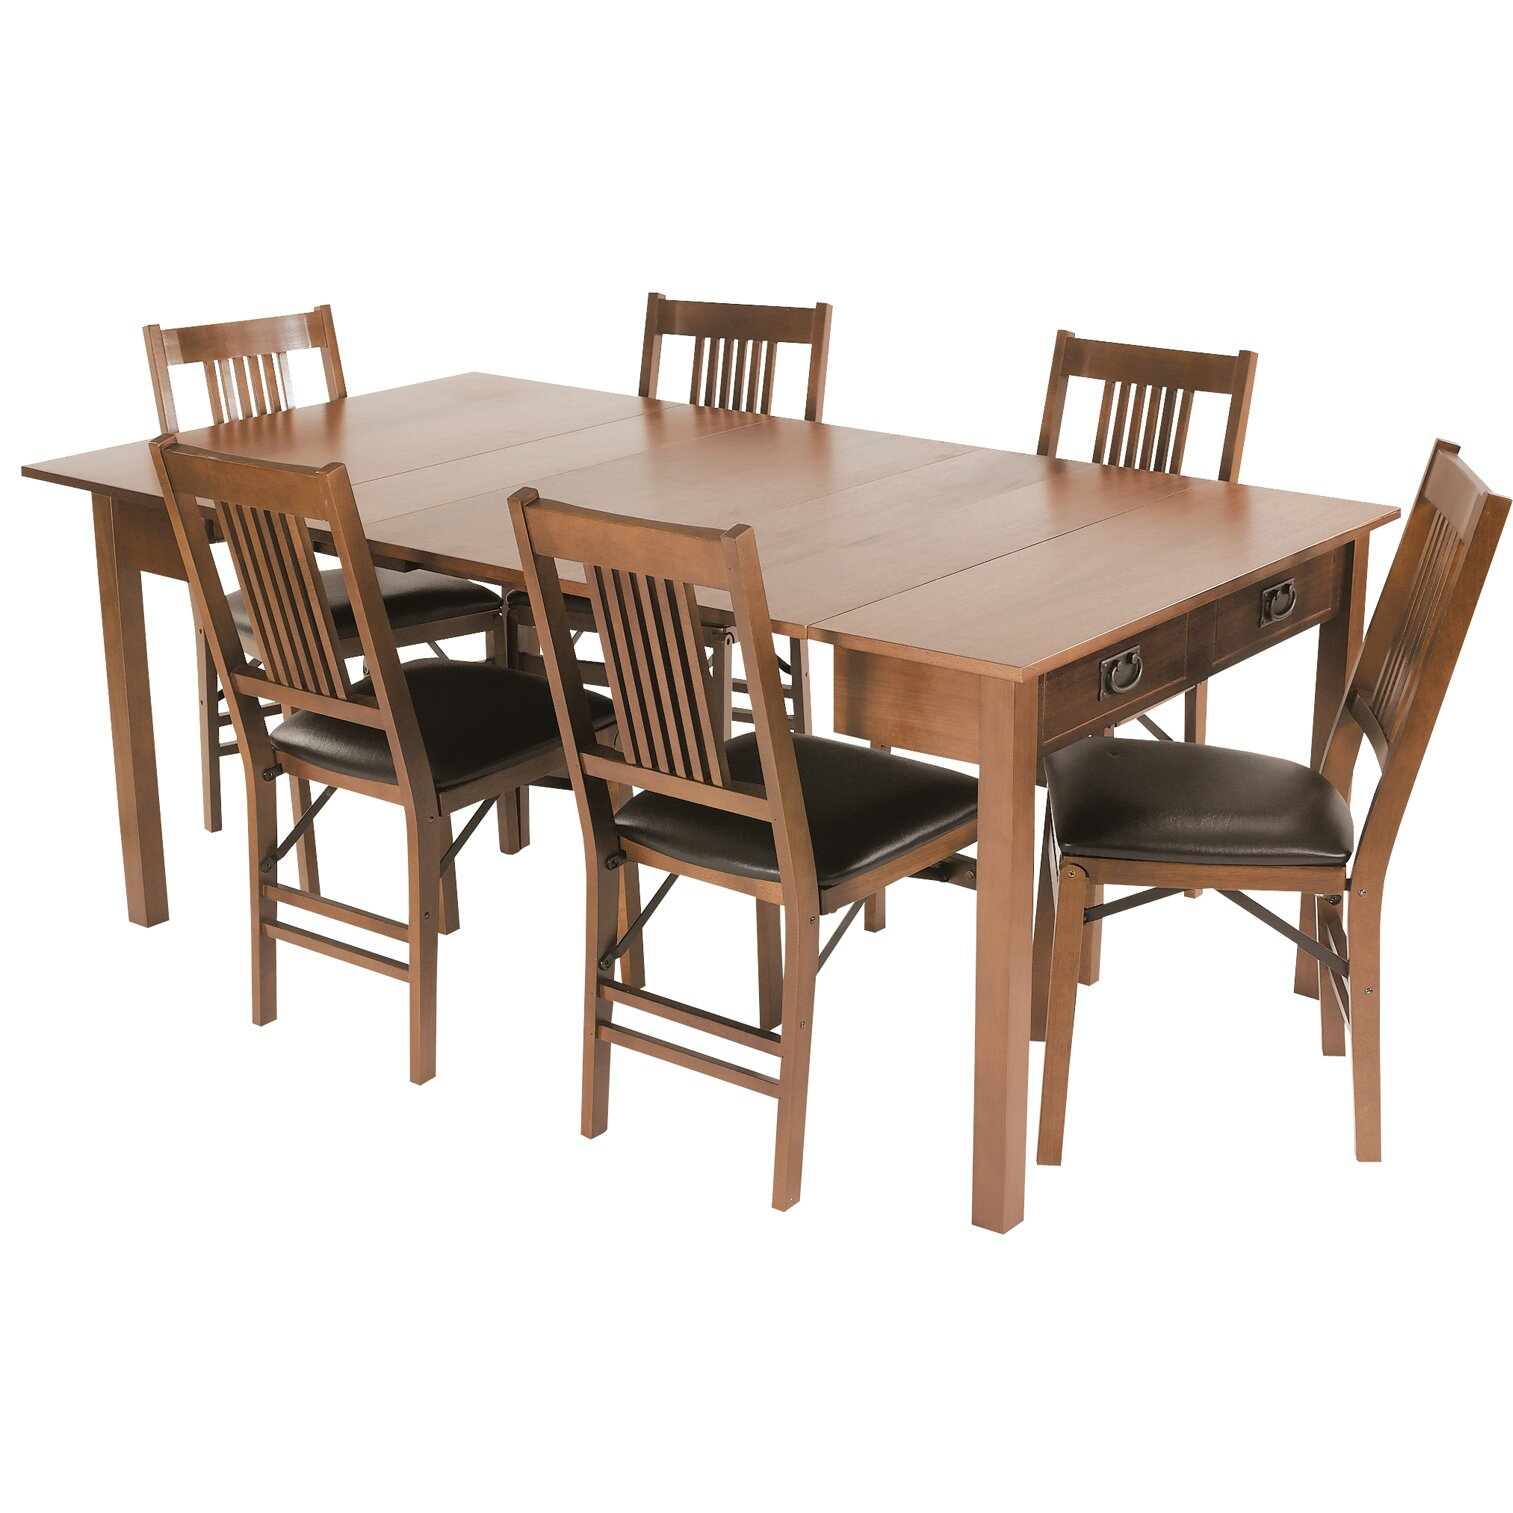 Stakmore mission style expanding dining table reviews wayfair - Mission style dining room furniture ...